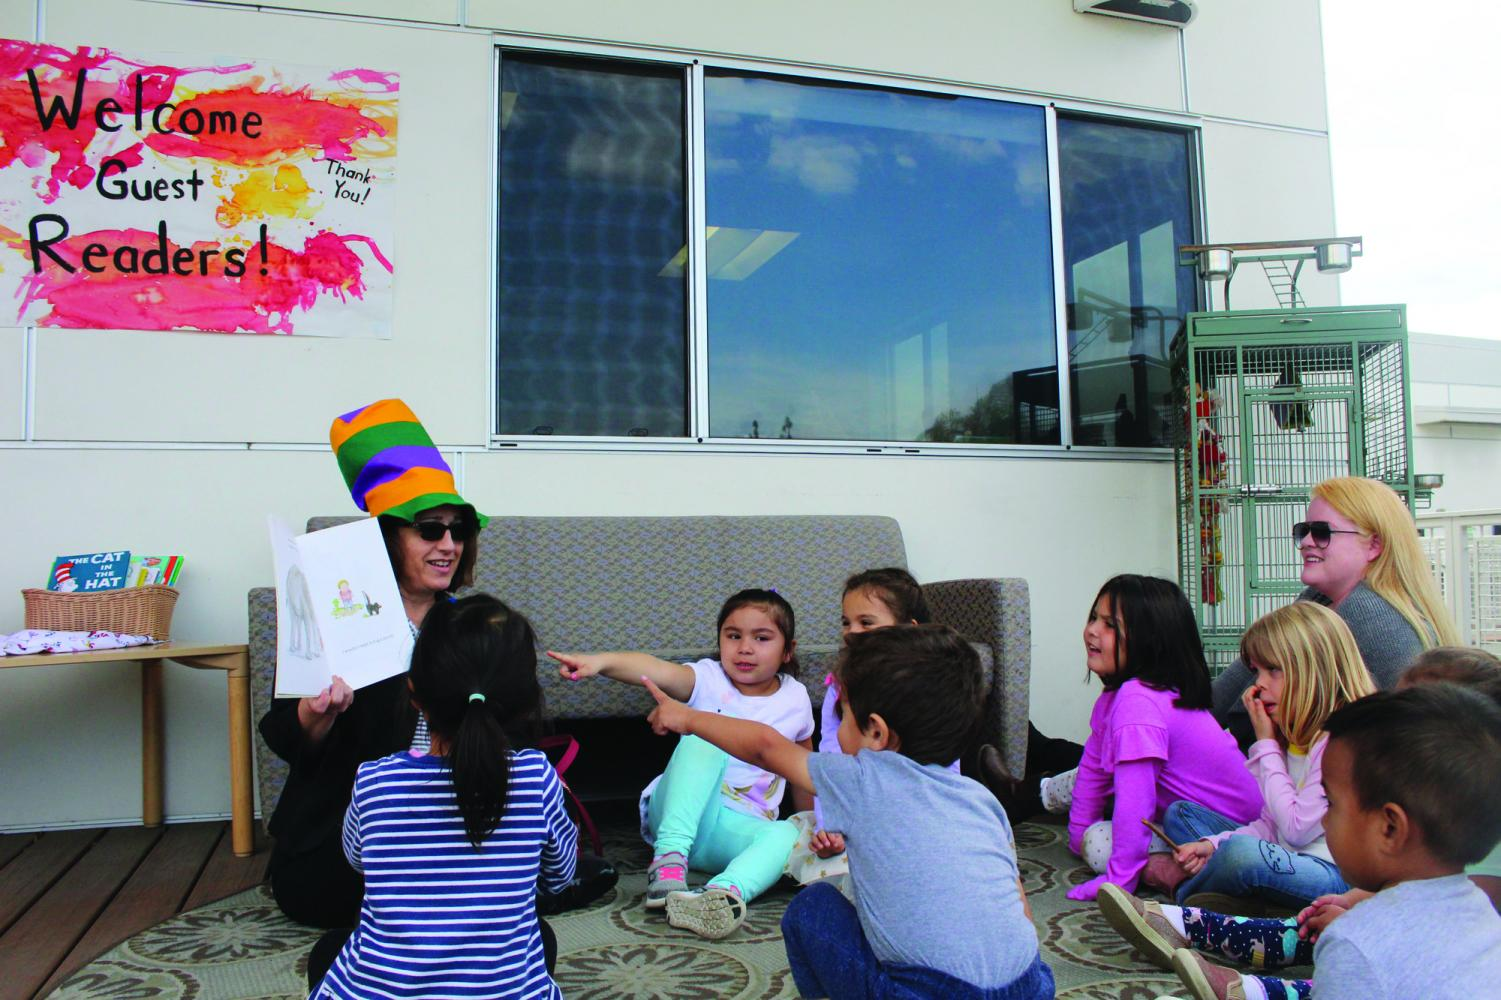 Getting 'Wacky' with guest readers